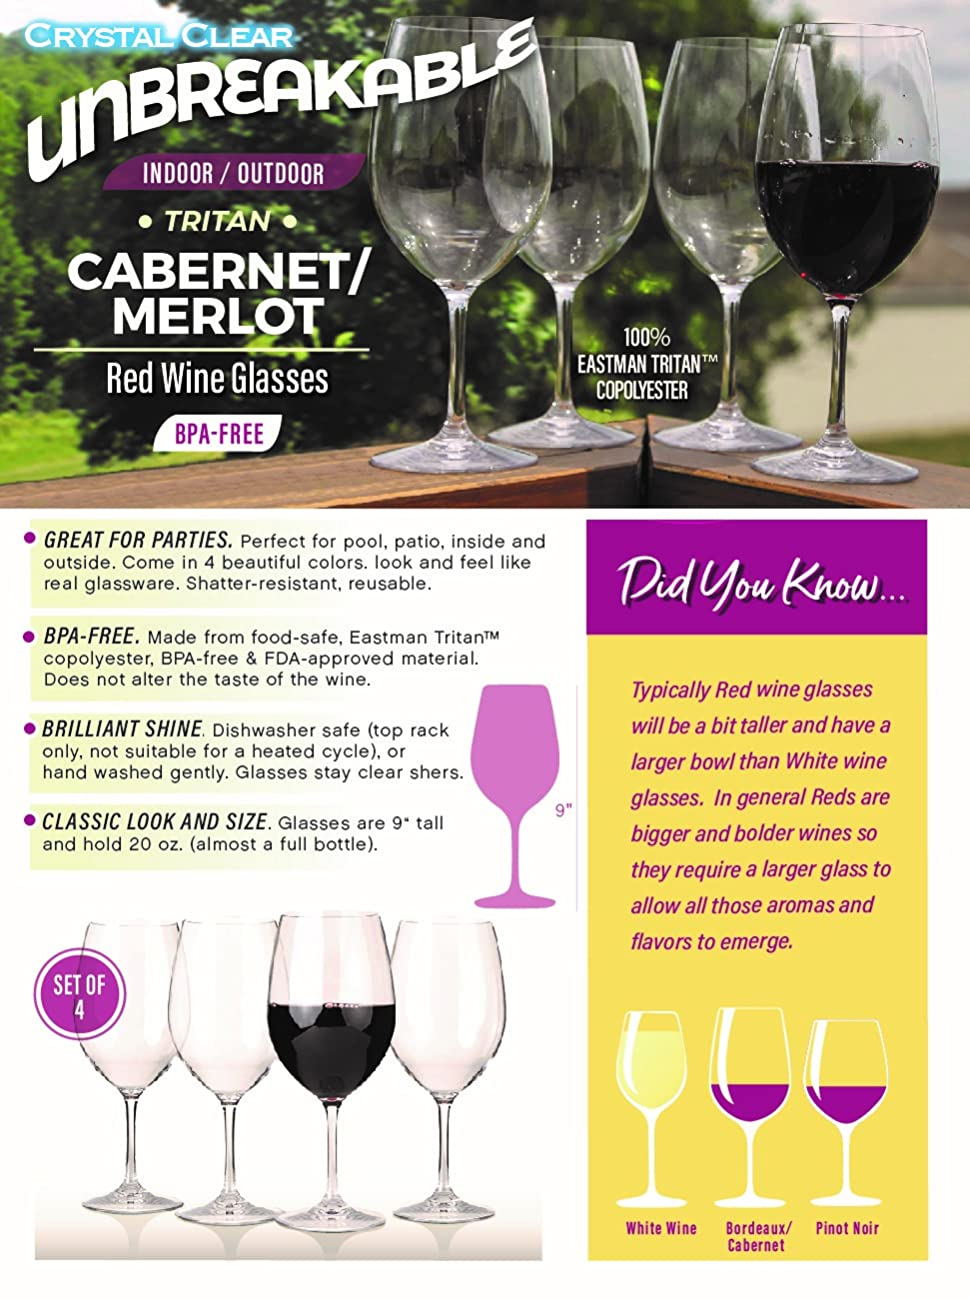 Our Shatterproof Cabernet / Merlot Glasses Are Unbreakable, Reusable And  Dishwasher Safe. The Glasses Allow You To Have The Look And Feel Of Real  Glassware ...